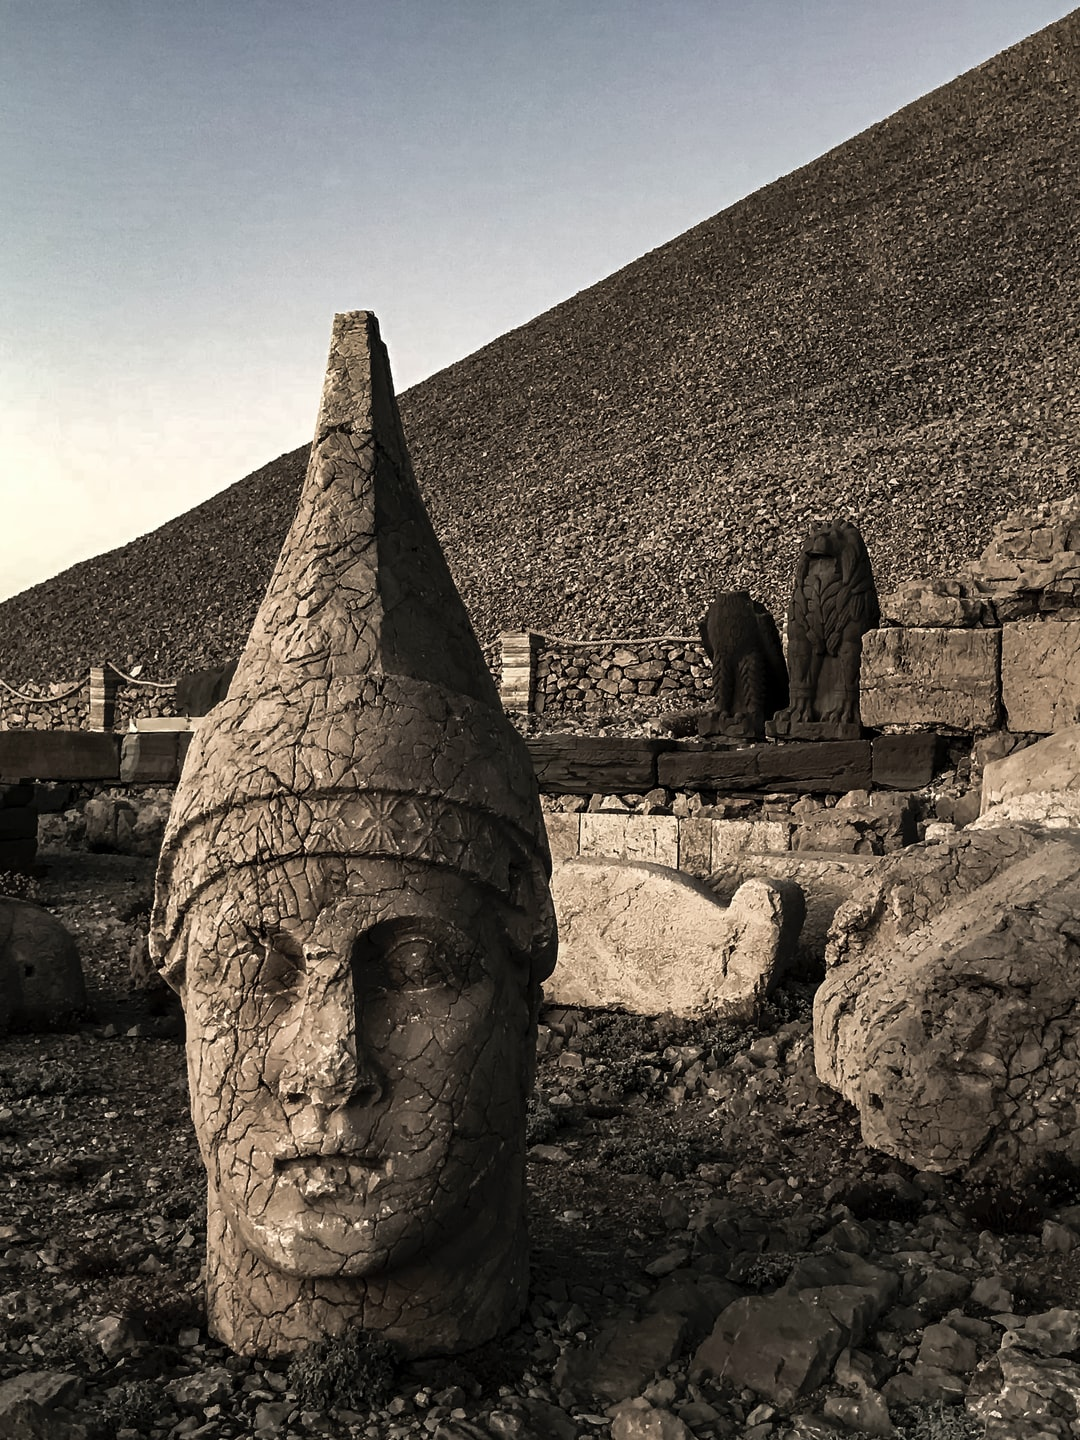 The End of the First Civilization? Degradation of the Mesopotamian Fertile Crescent